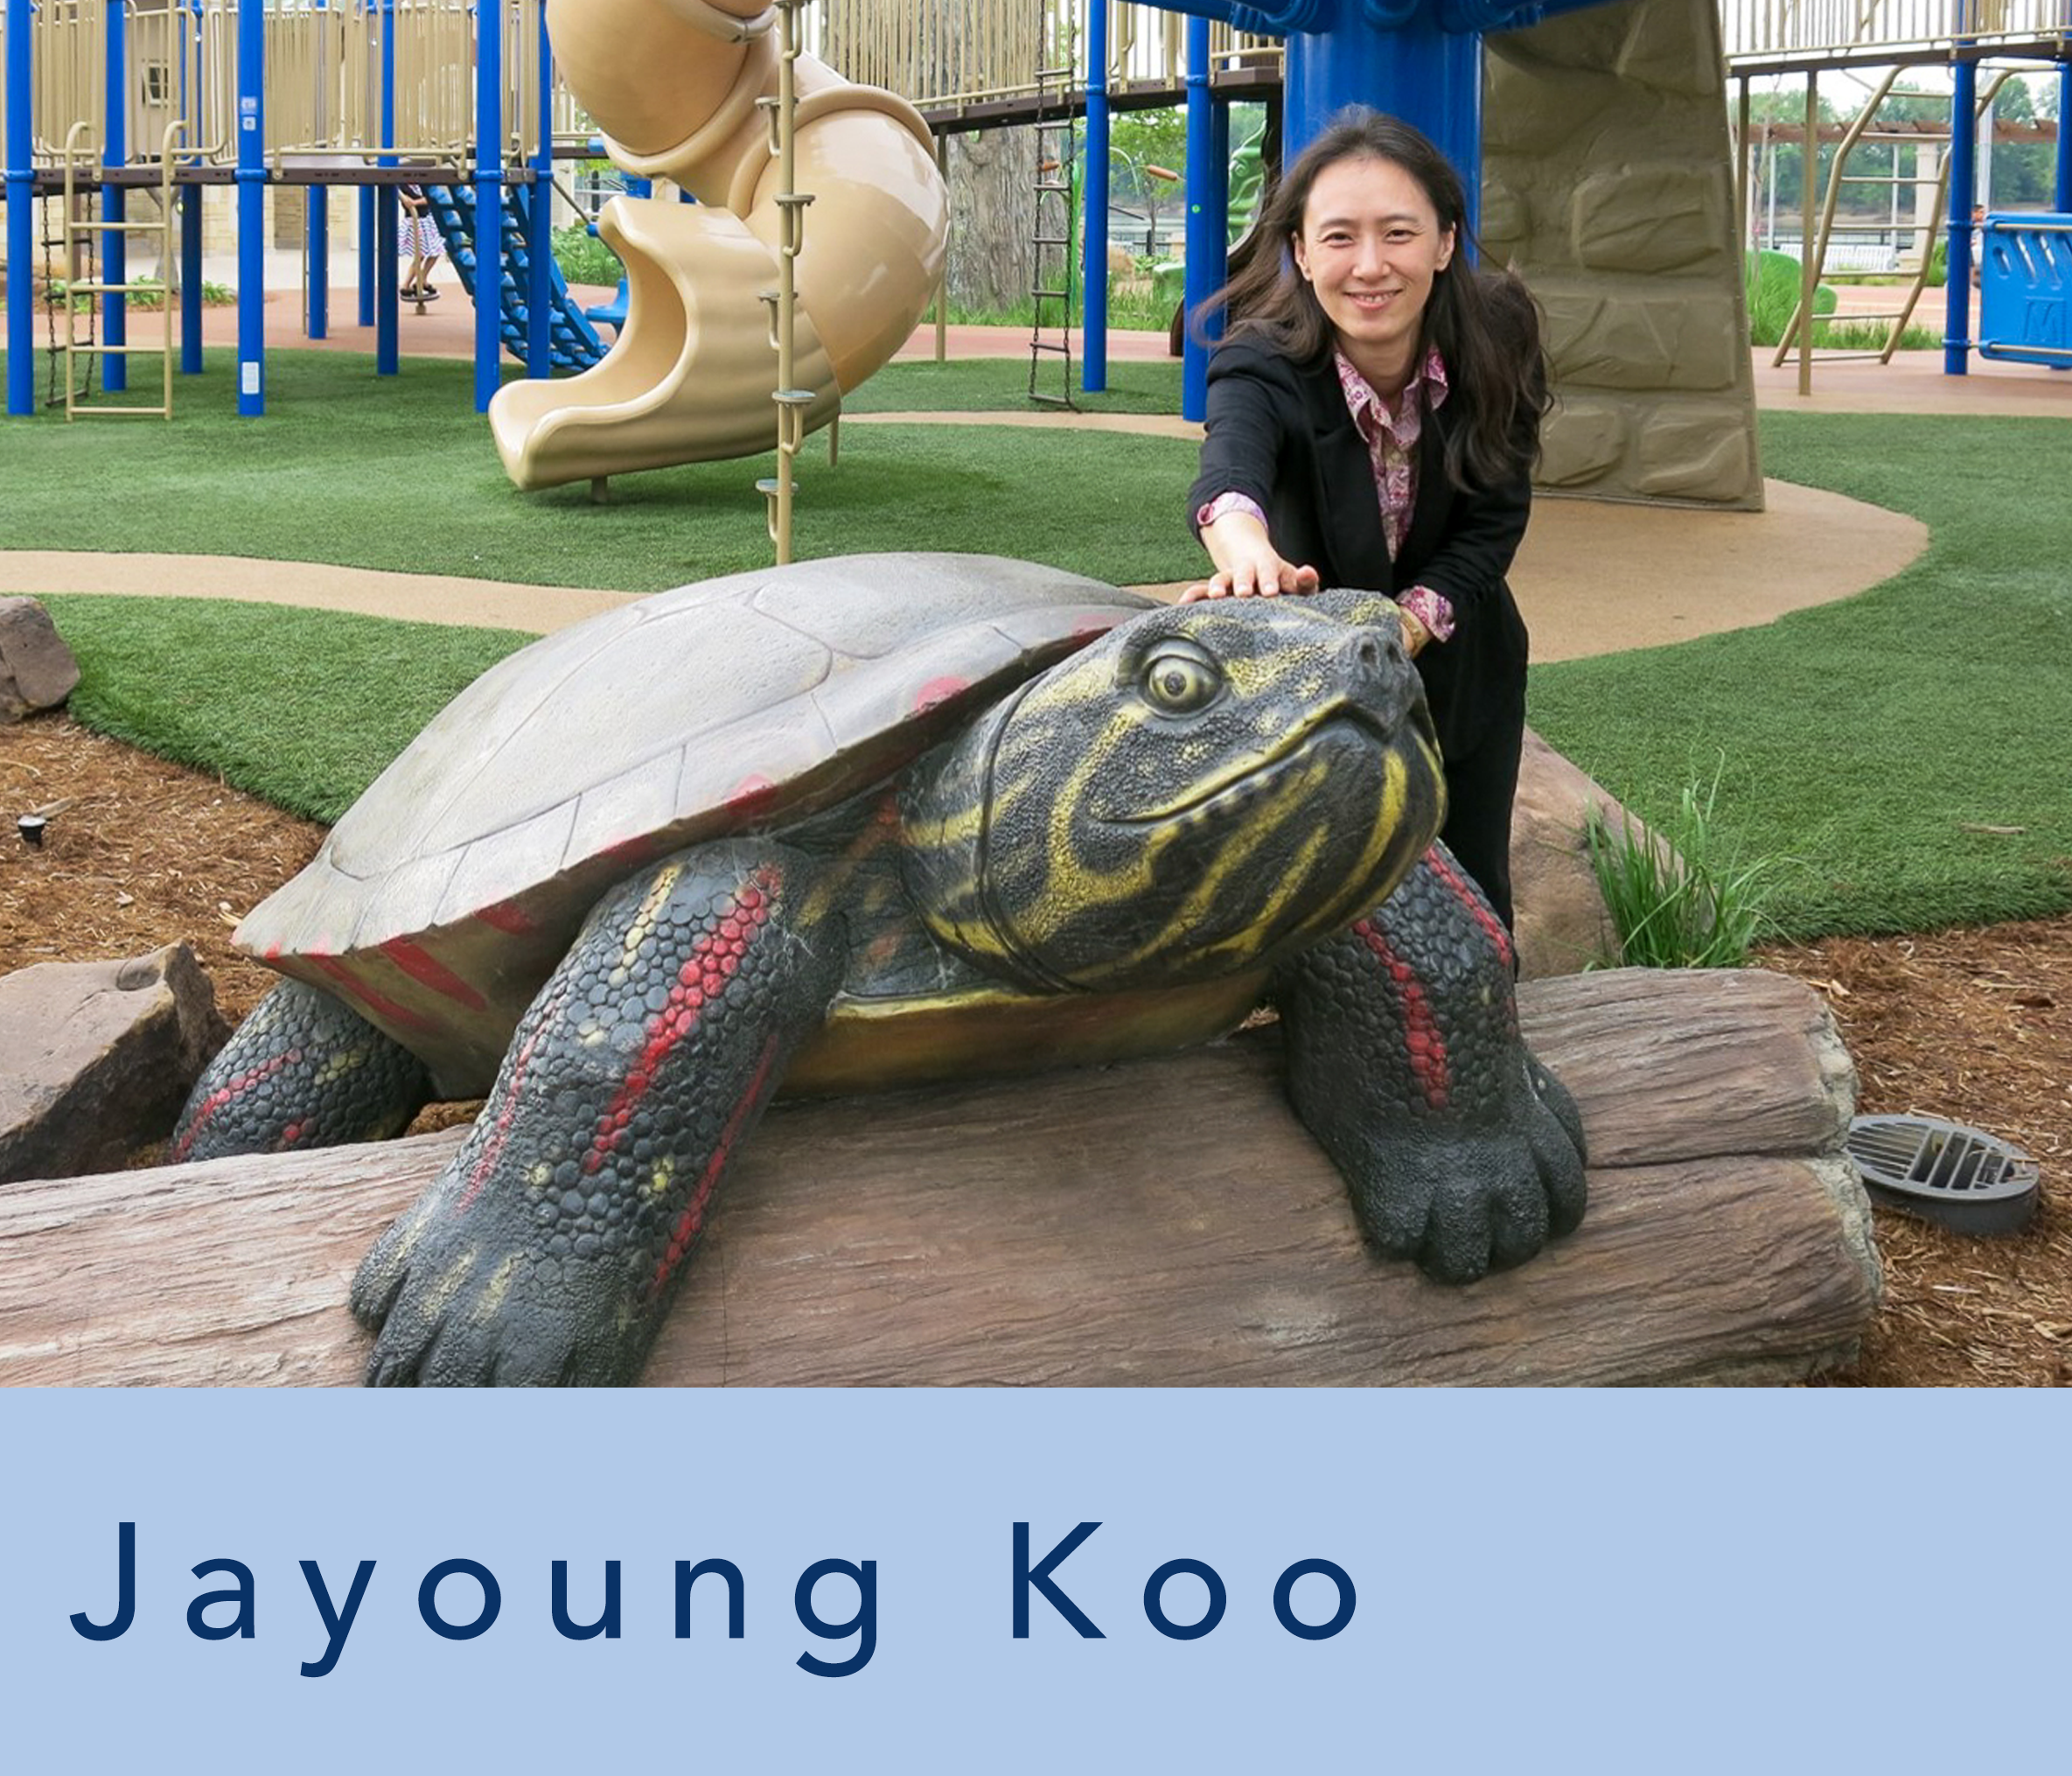 photograph of Jayoung Koo at a child's playground